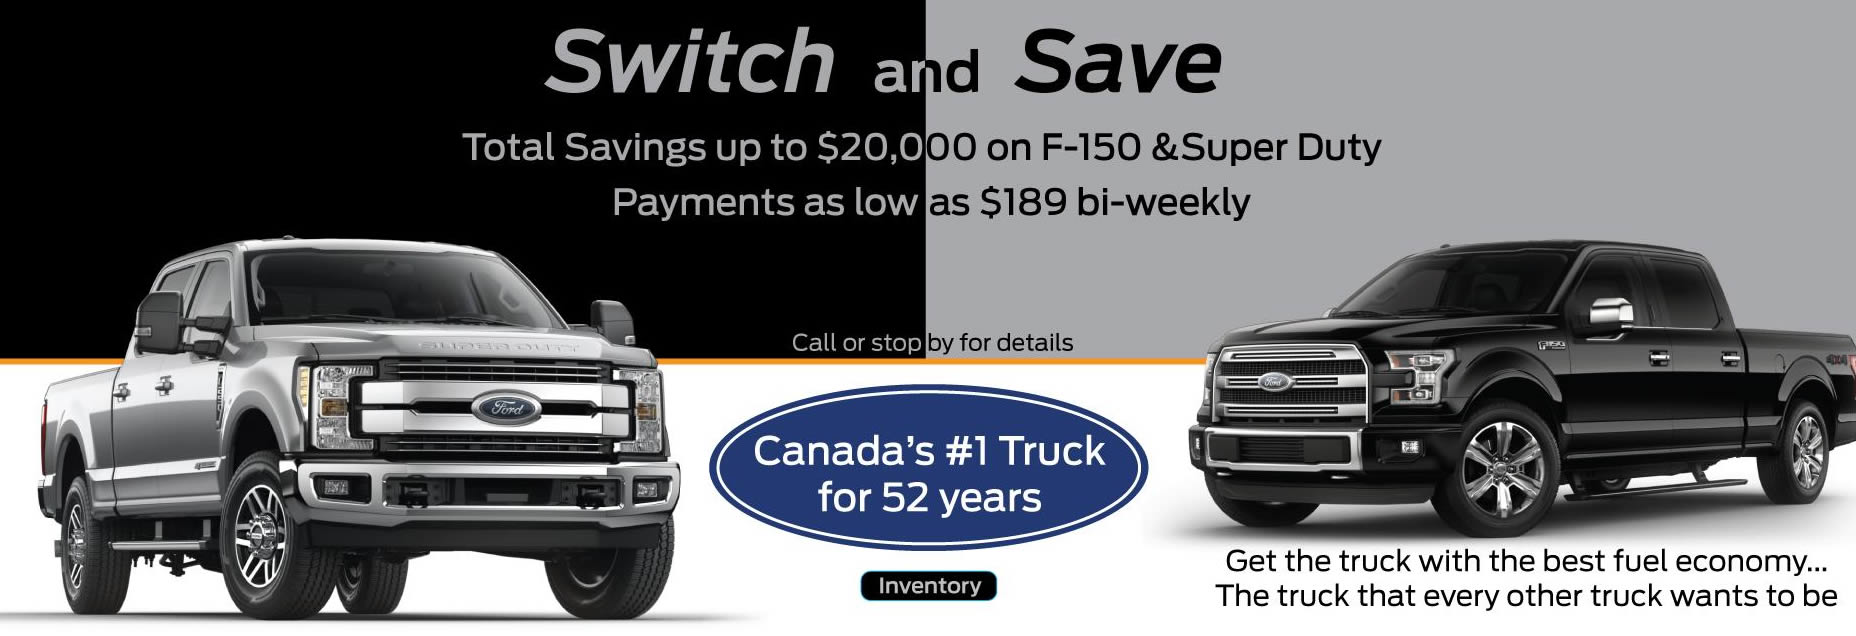 Halifax Best Car Deals: Ford F150 Pickup Offers